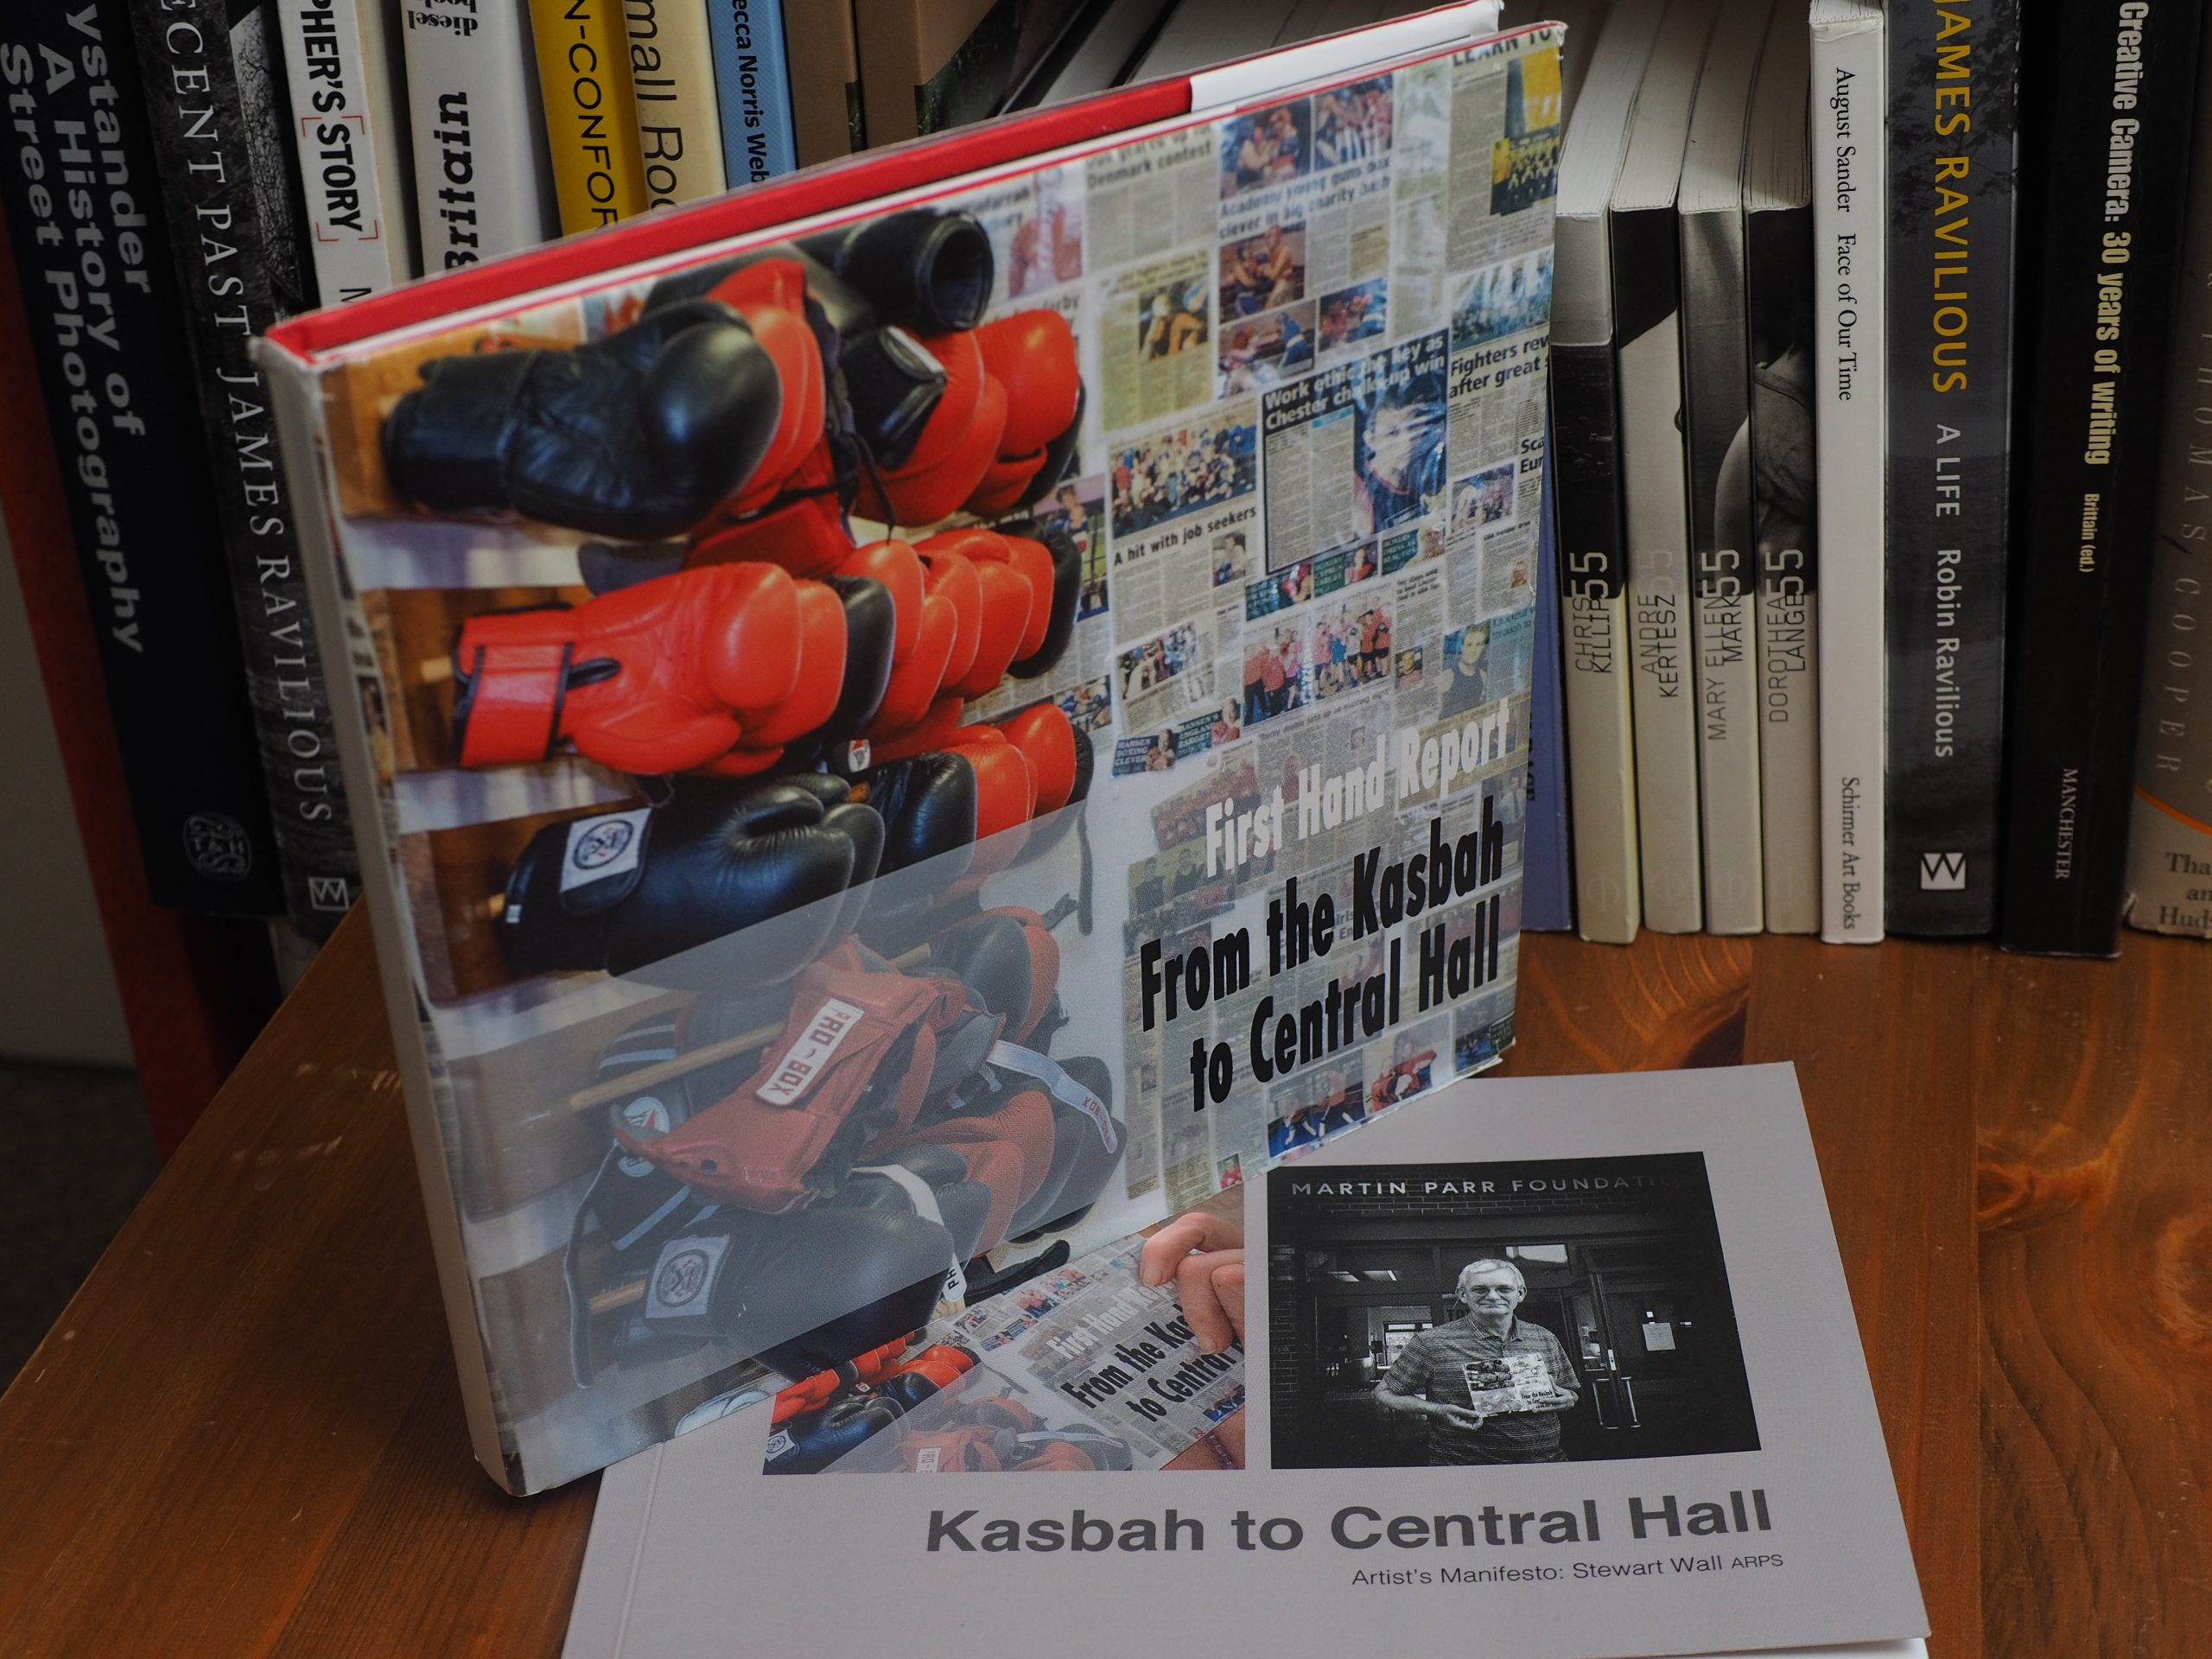 The Kasbah to Central Hall